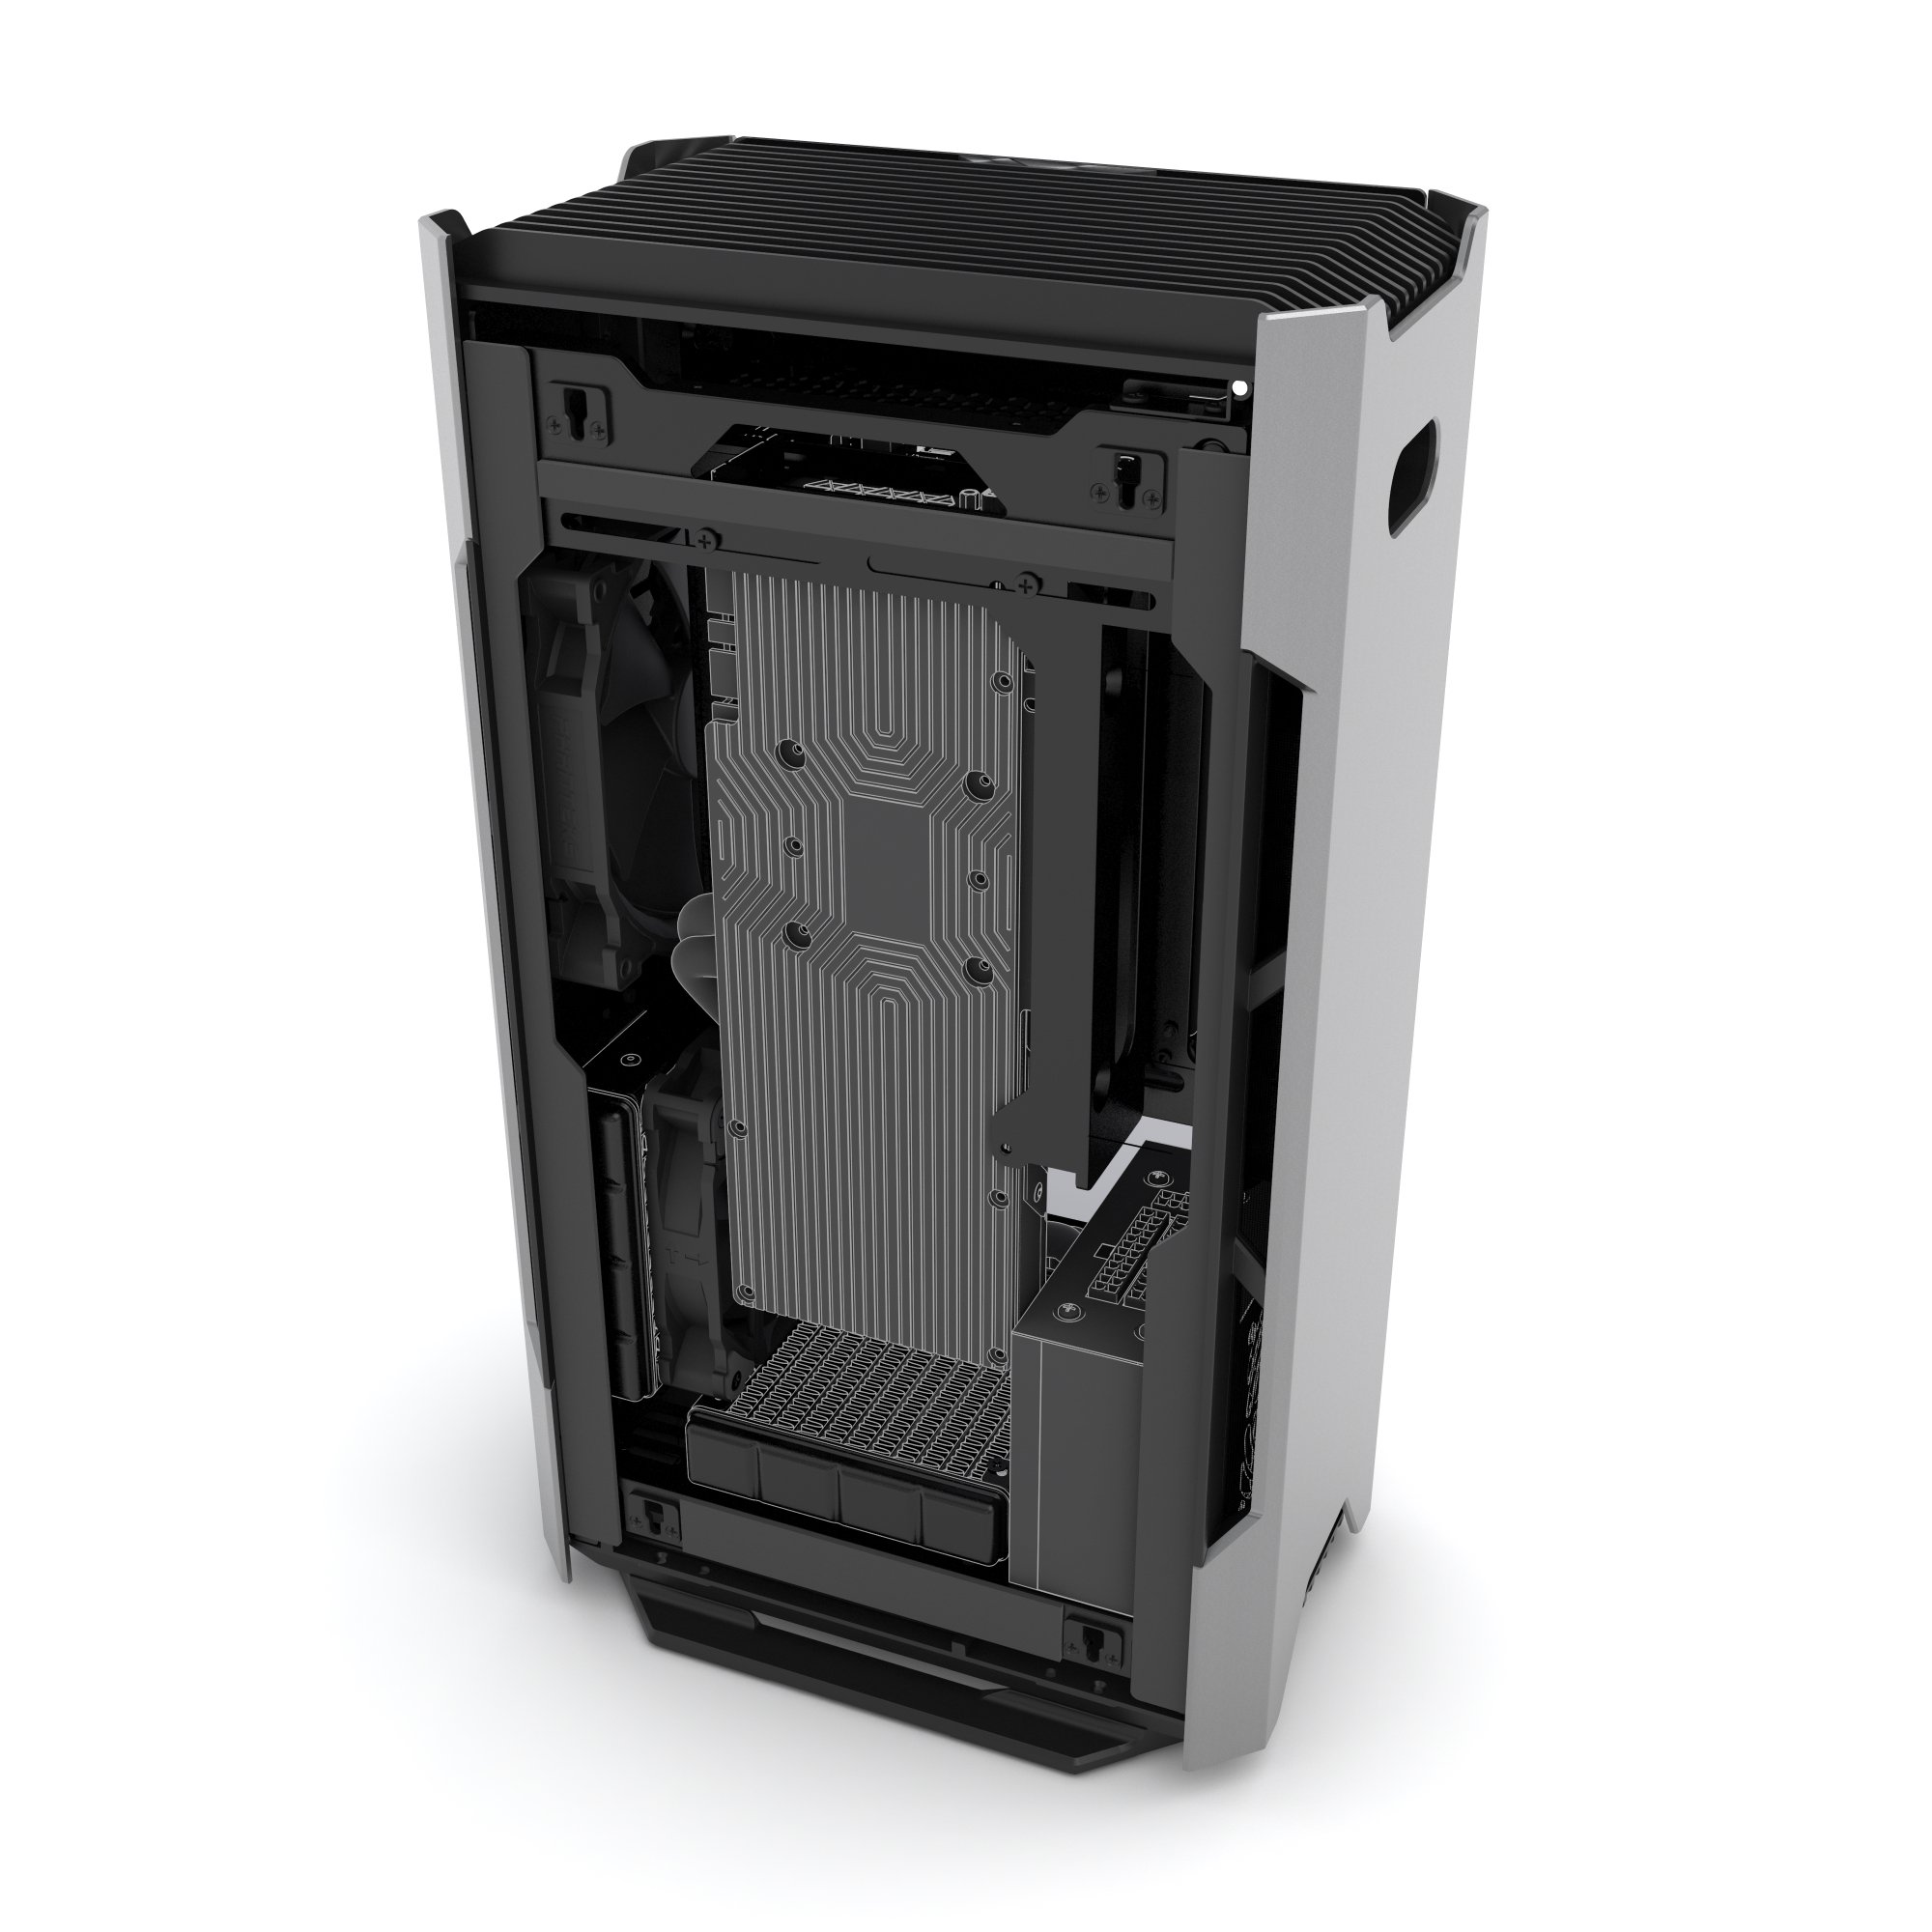 Phanteks PH-ES217E_AG EVOLV SHIFT Mini ITX Dual Tempered Glass for AIO water cooling Anthracite Gray Cases by Phanteks (Image #8)